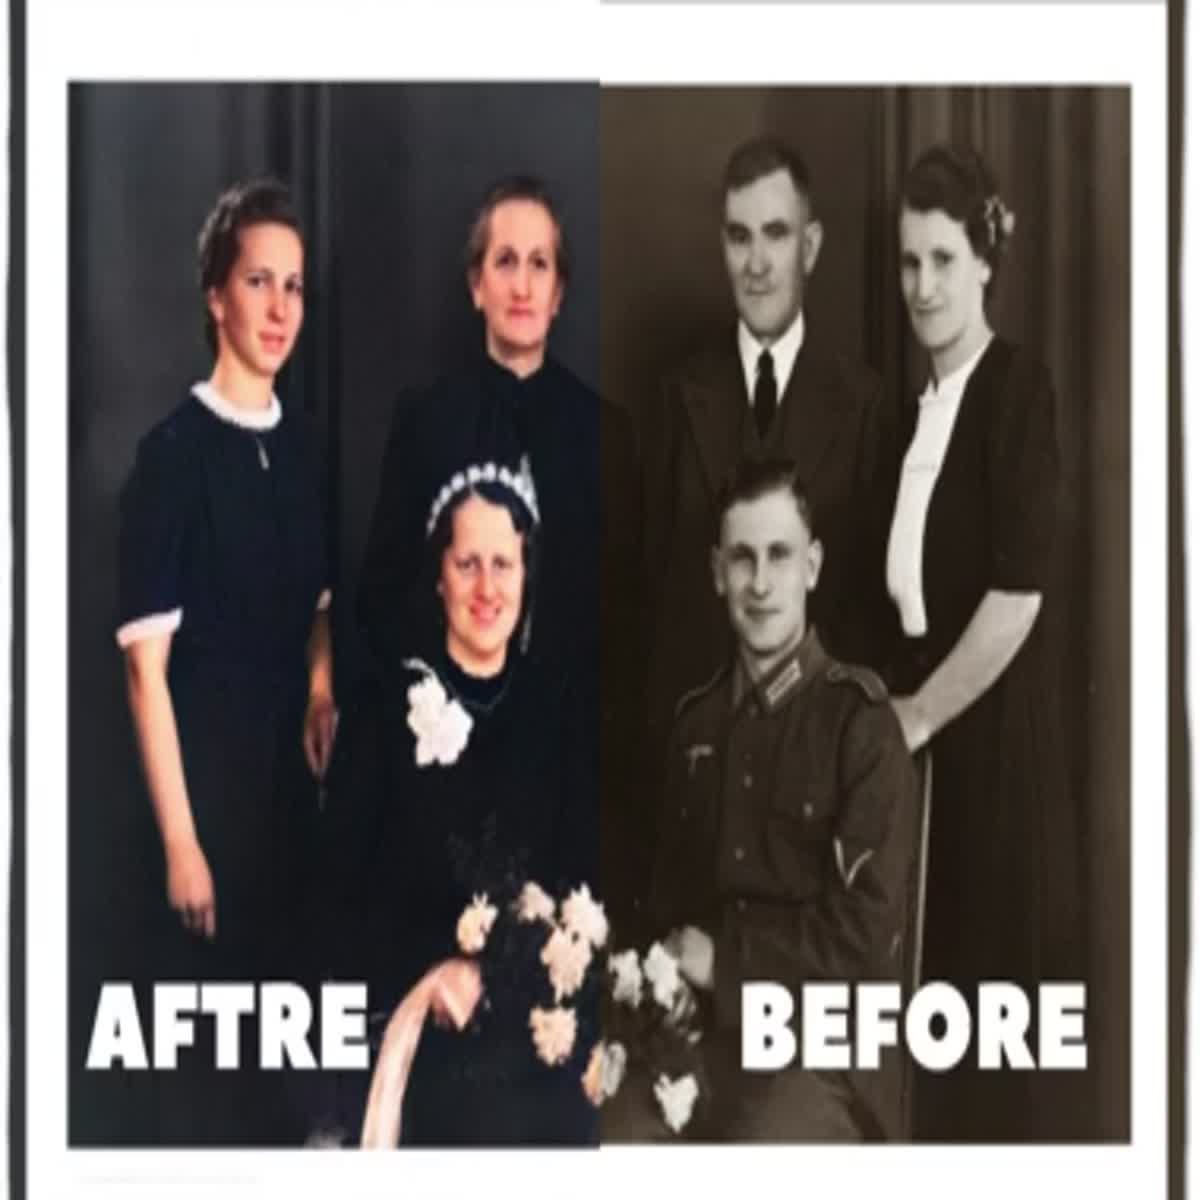 I colorize your black and white 5 photo